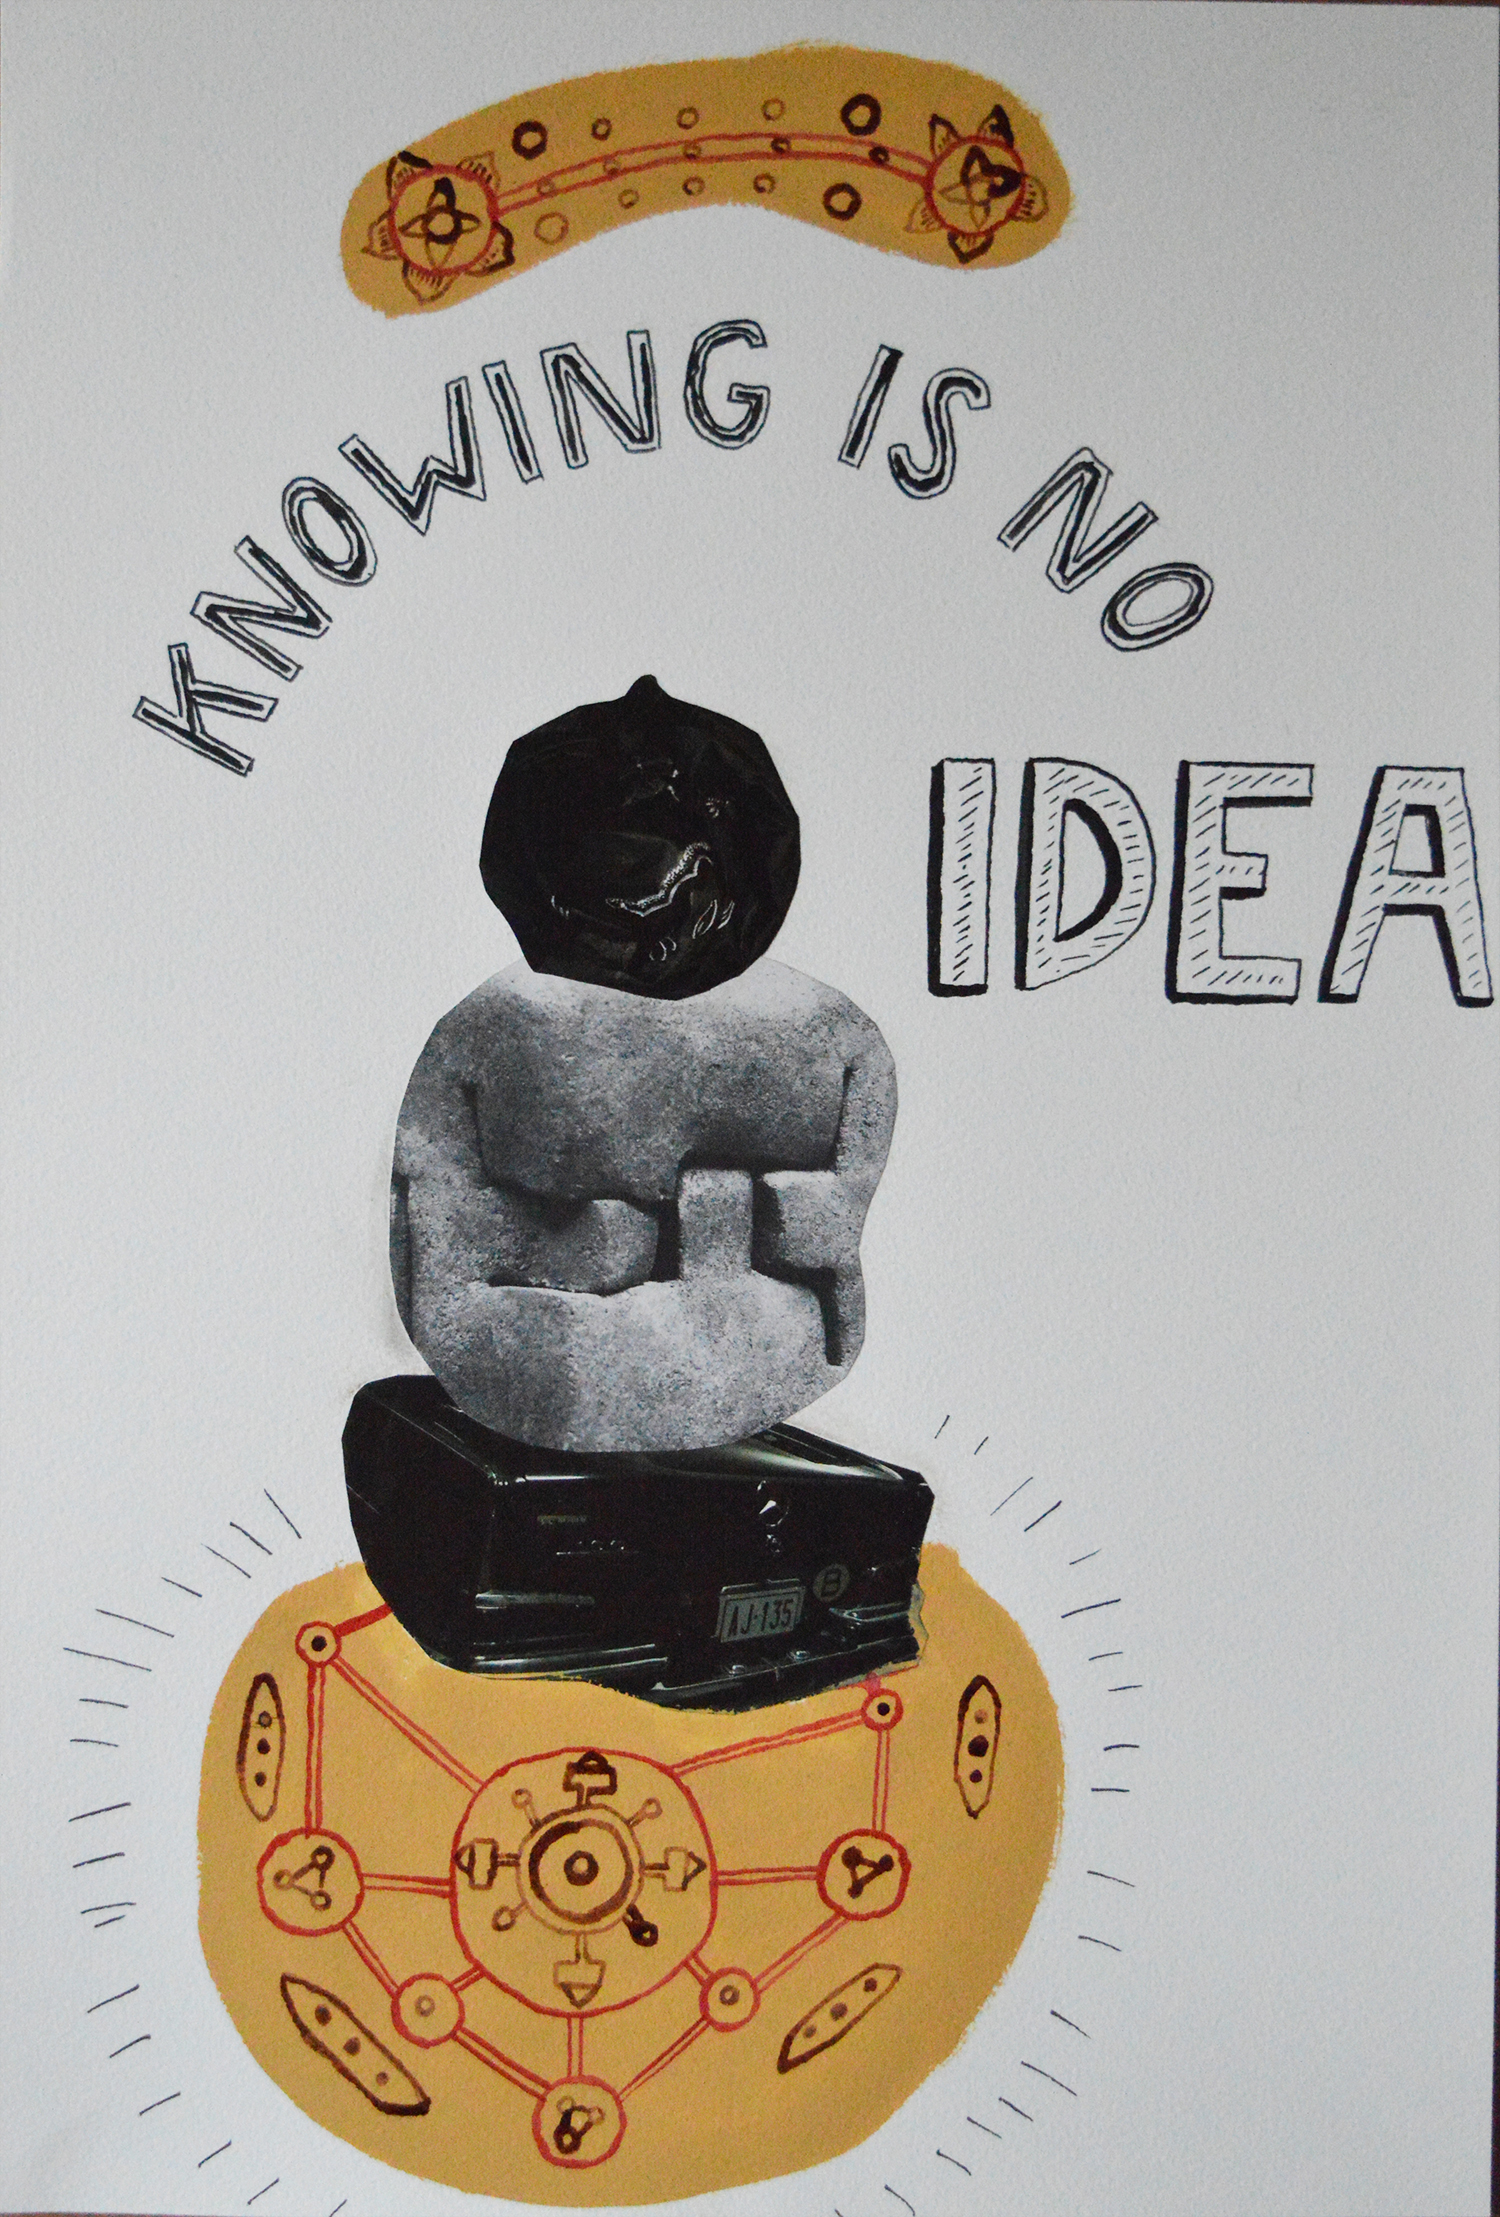 Knowing Is No Idea